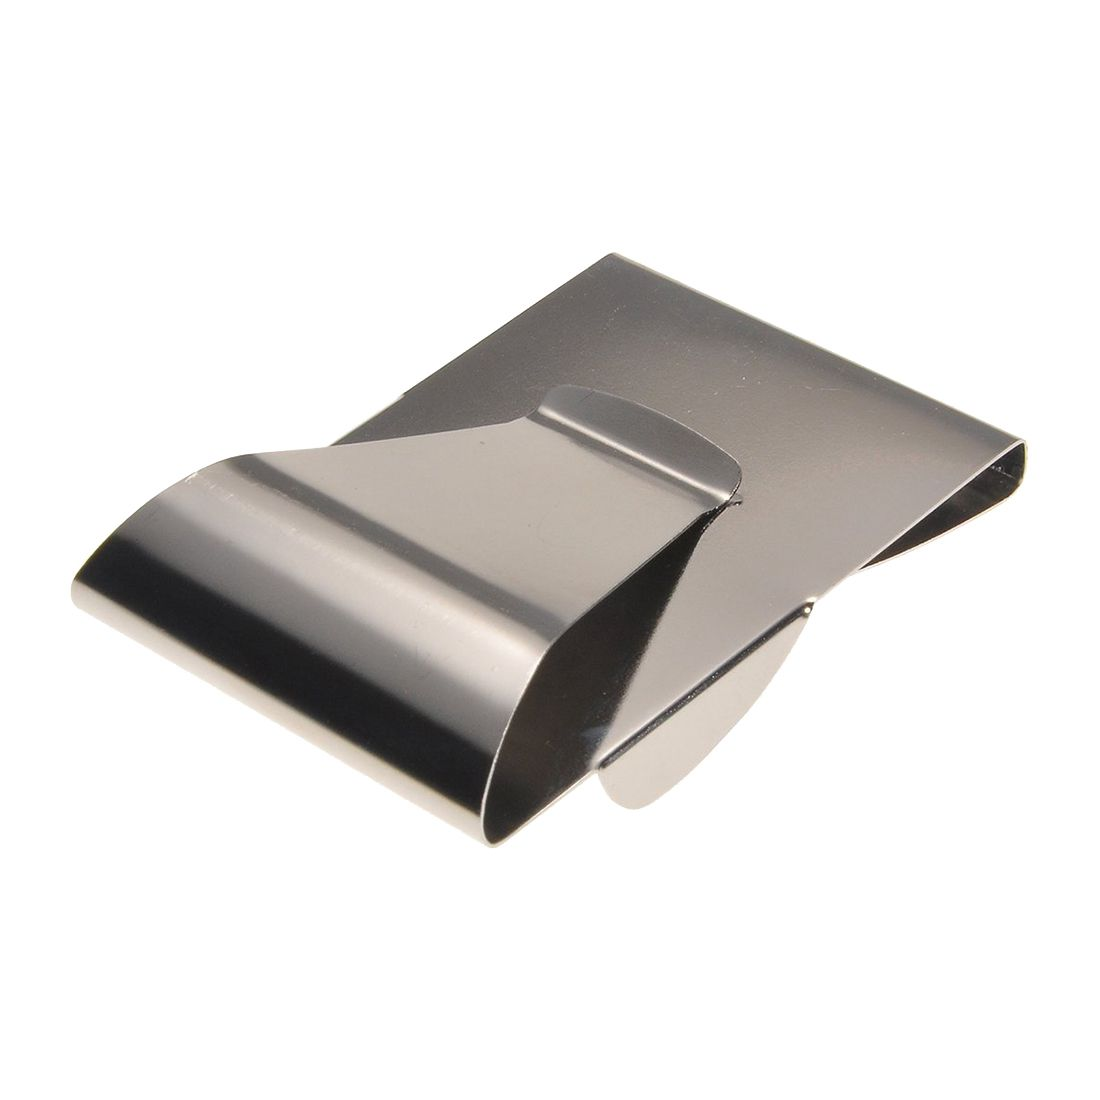 2 Pcs of (VSEN Hot Stainless Steel Double Side Money Cash Credit Bank Card Holder Wallet Grip Clip)